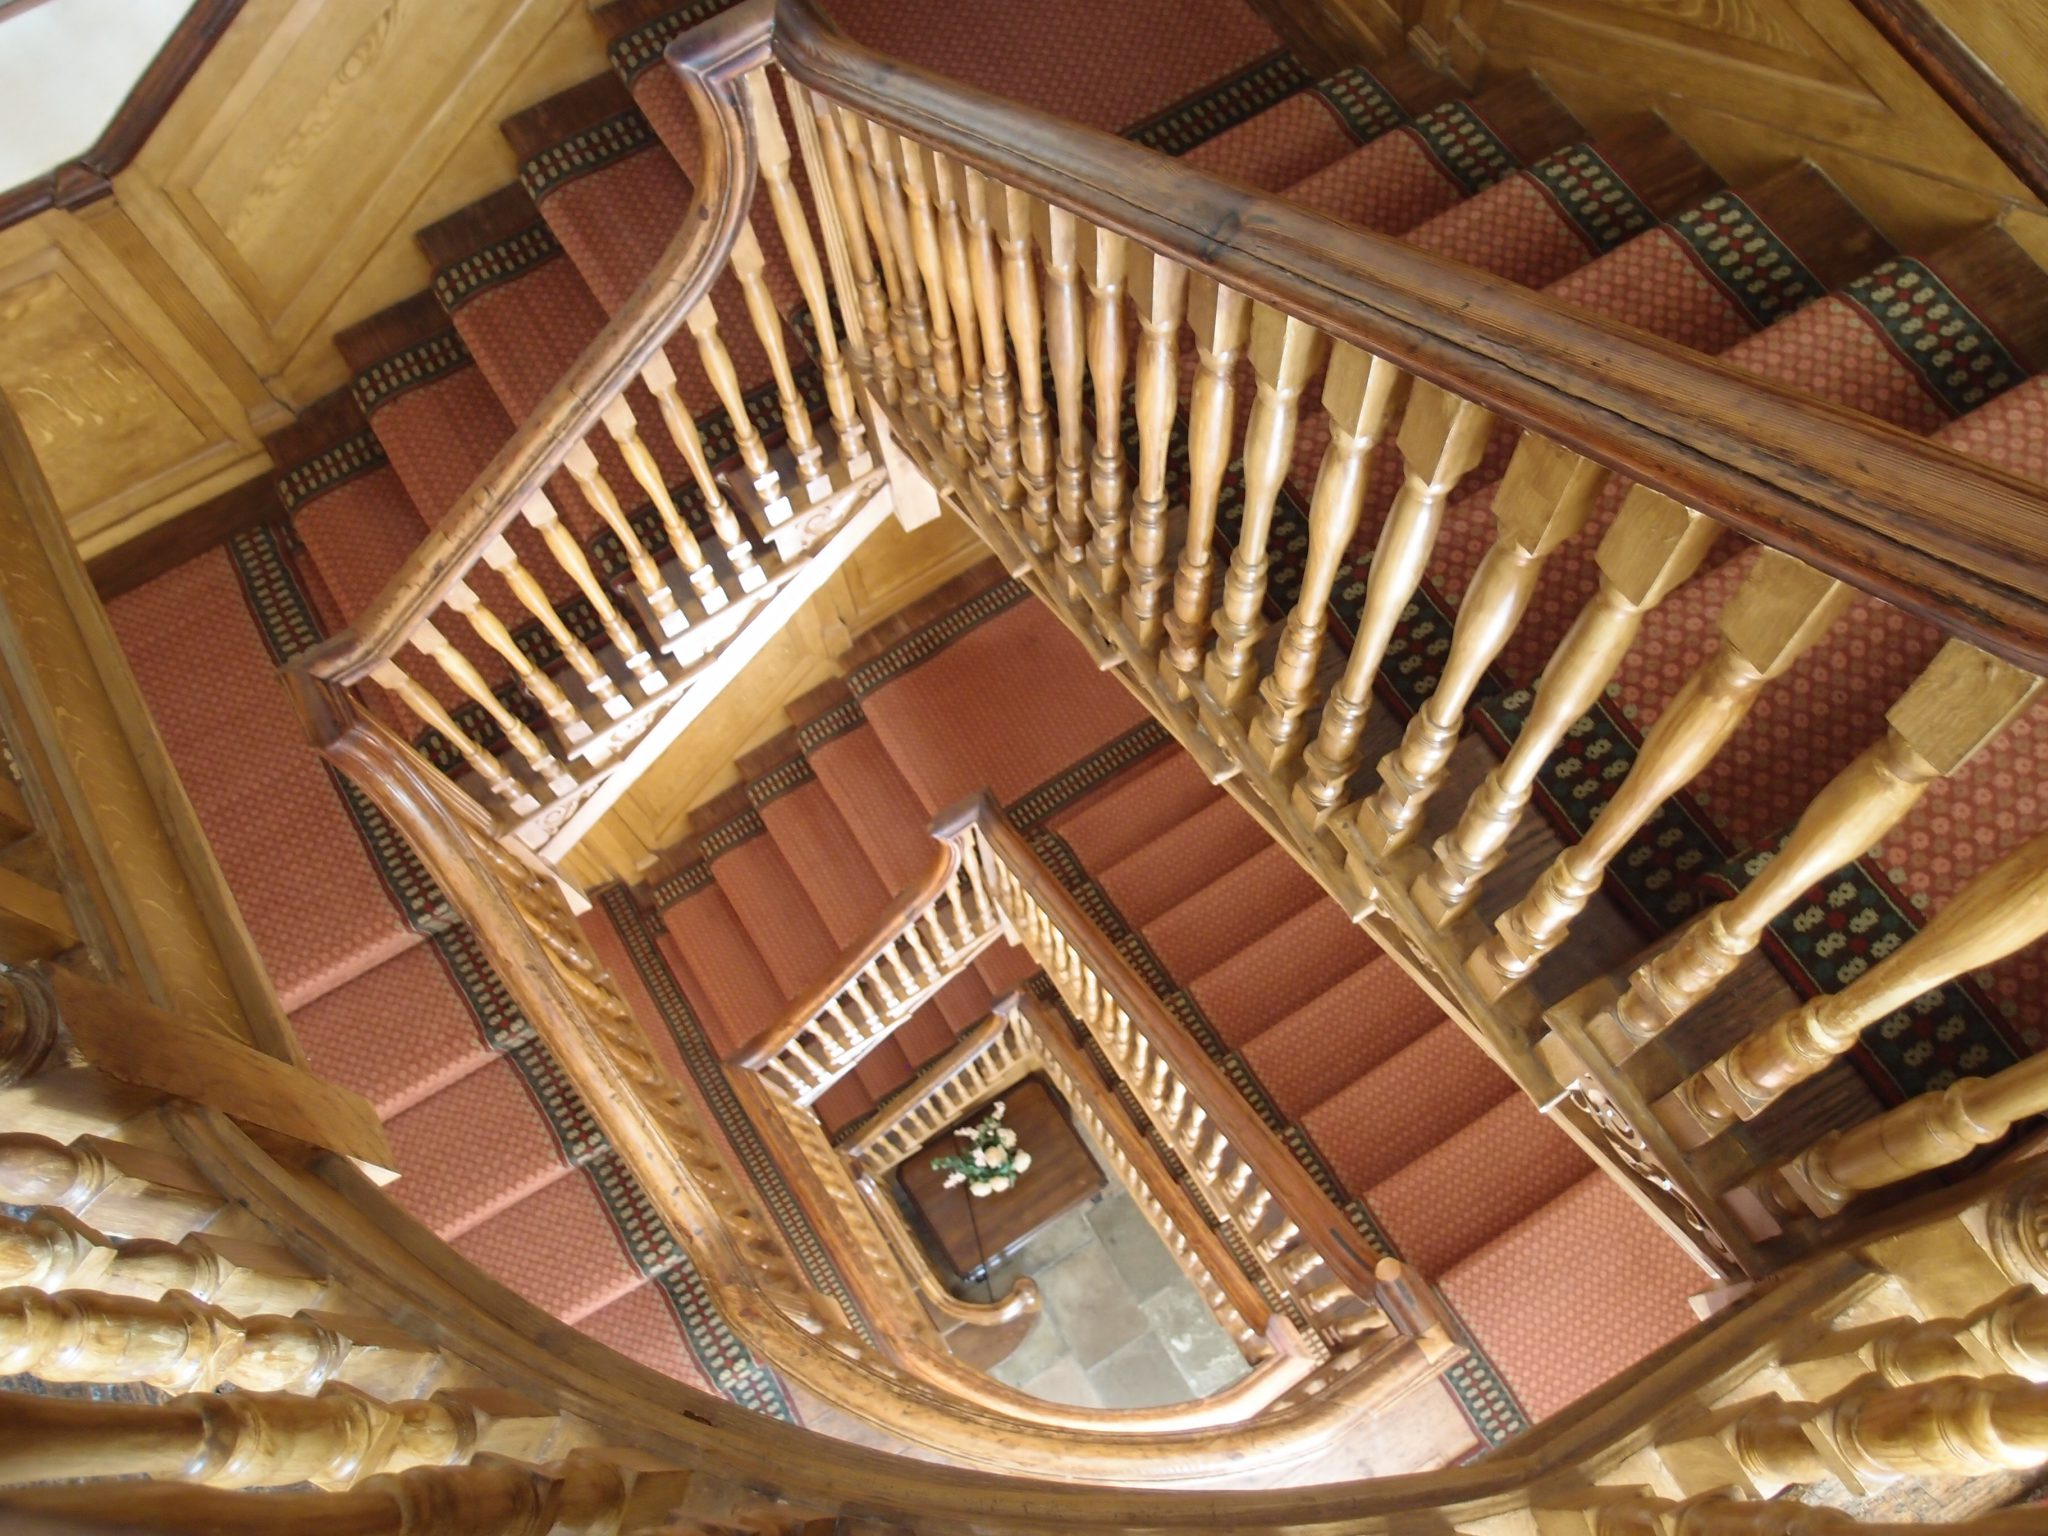 The Georgia Staircase, which rises through 4 floors, was built in the late 18th century.